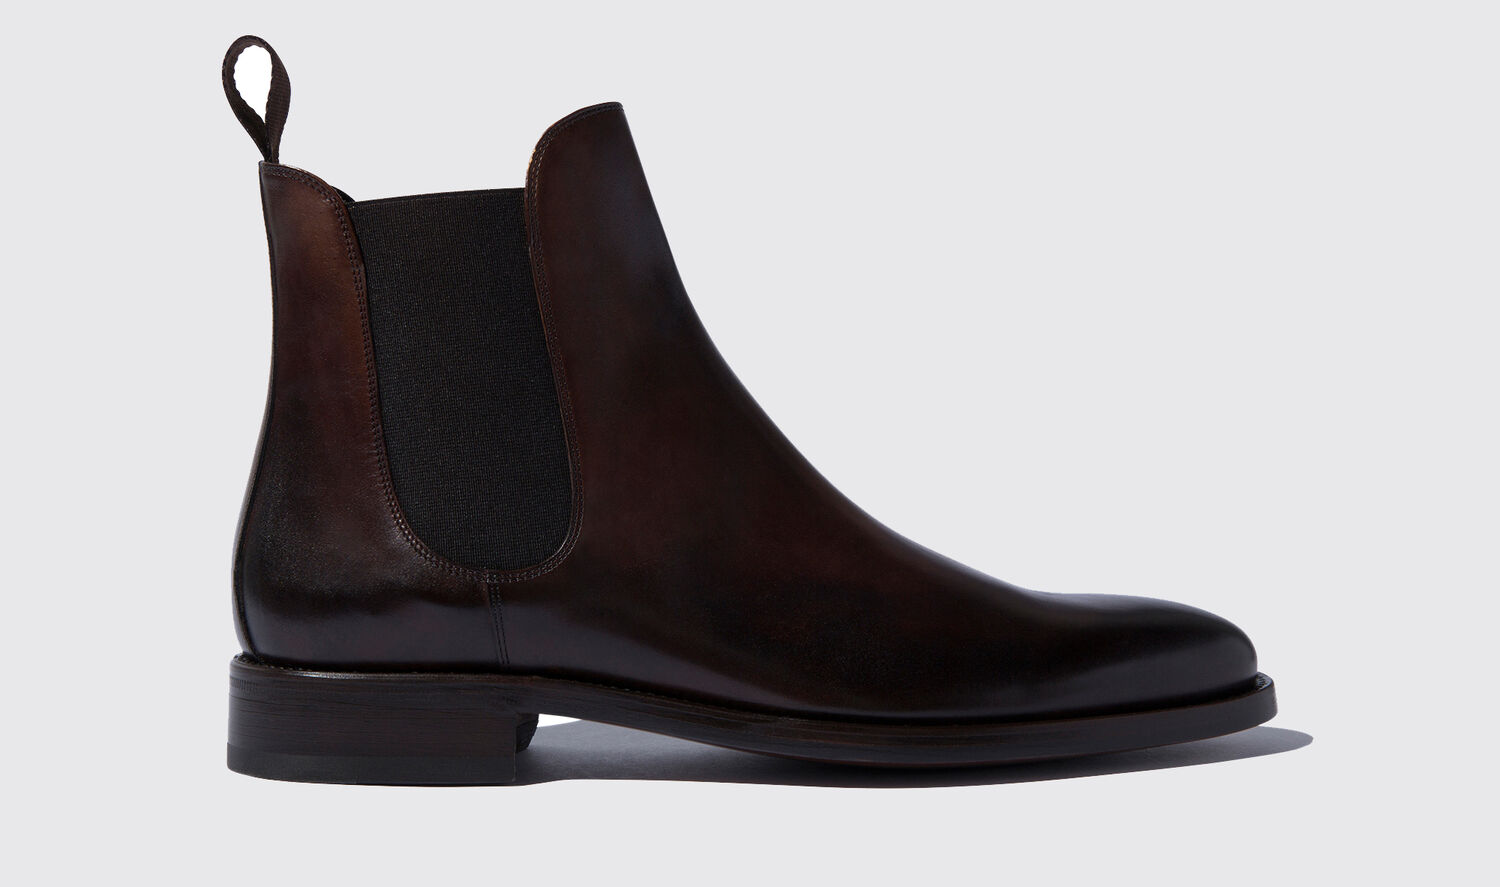 Image of Chelsea Boots Italian Shoe Scarosso male Enzo Ebano Dark Brown Calf Calf Leather 43